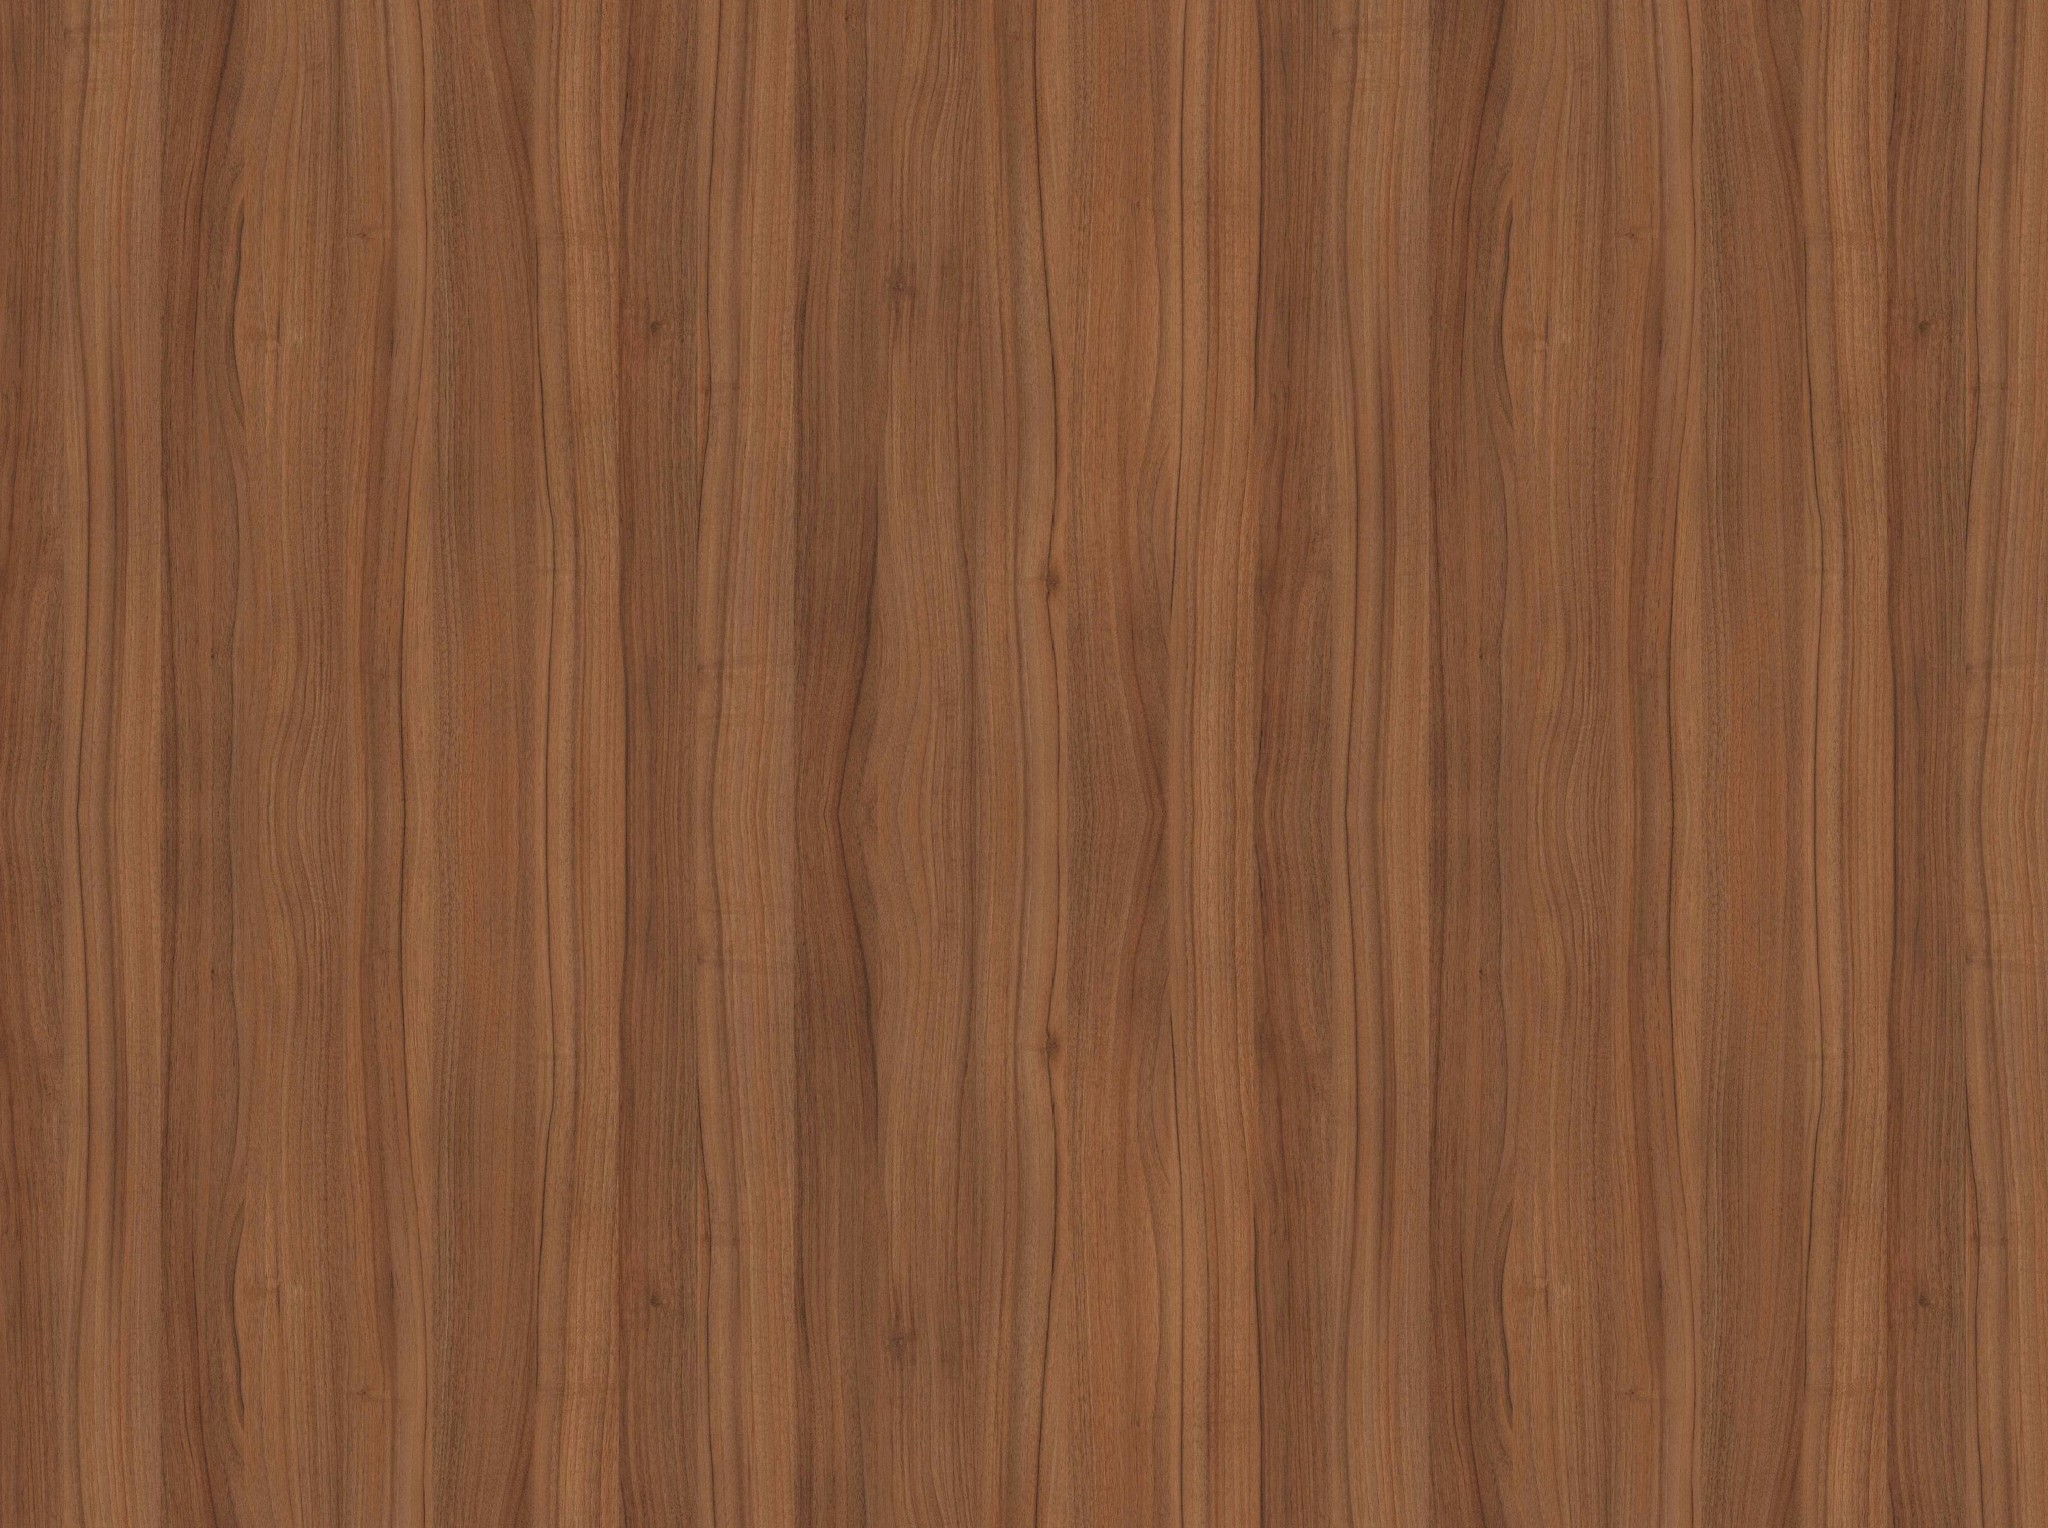 50 Hd Wood Wallpapers For Free Download: Wood Wallpaper 1080p (73+ Images